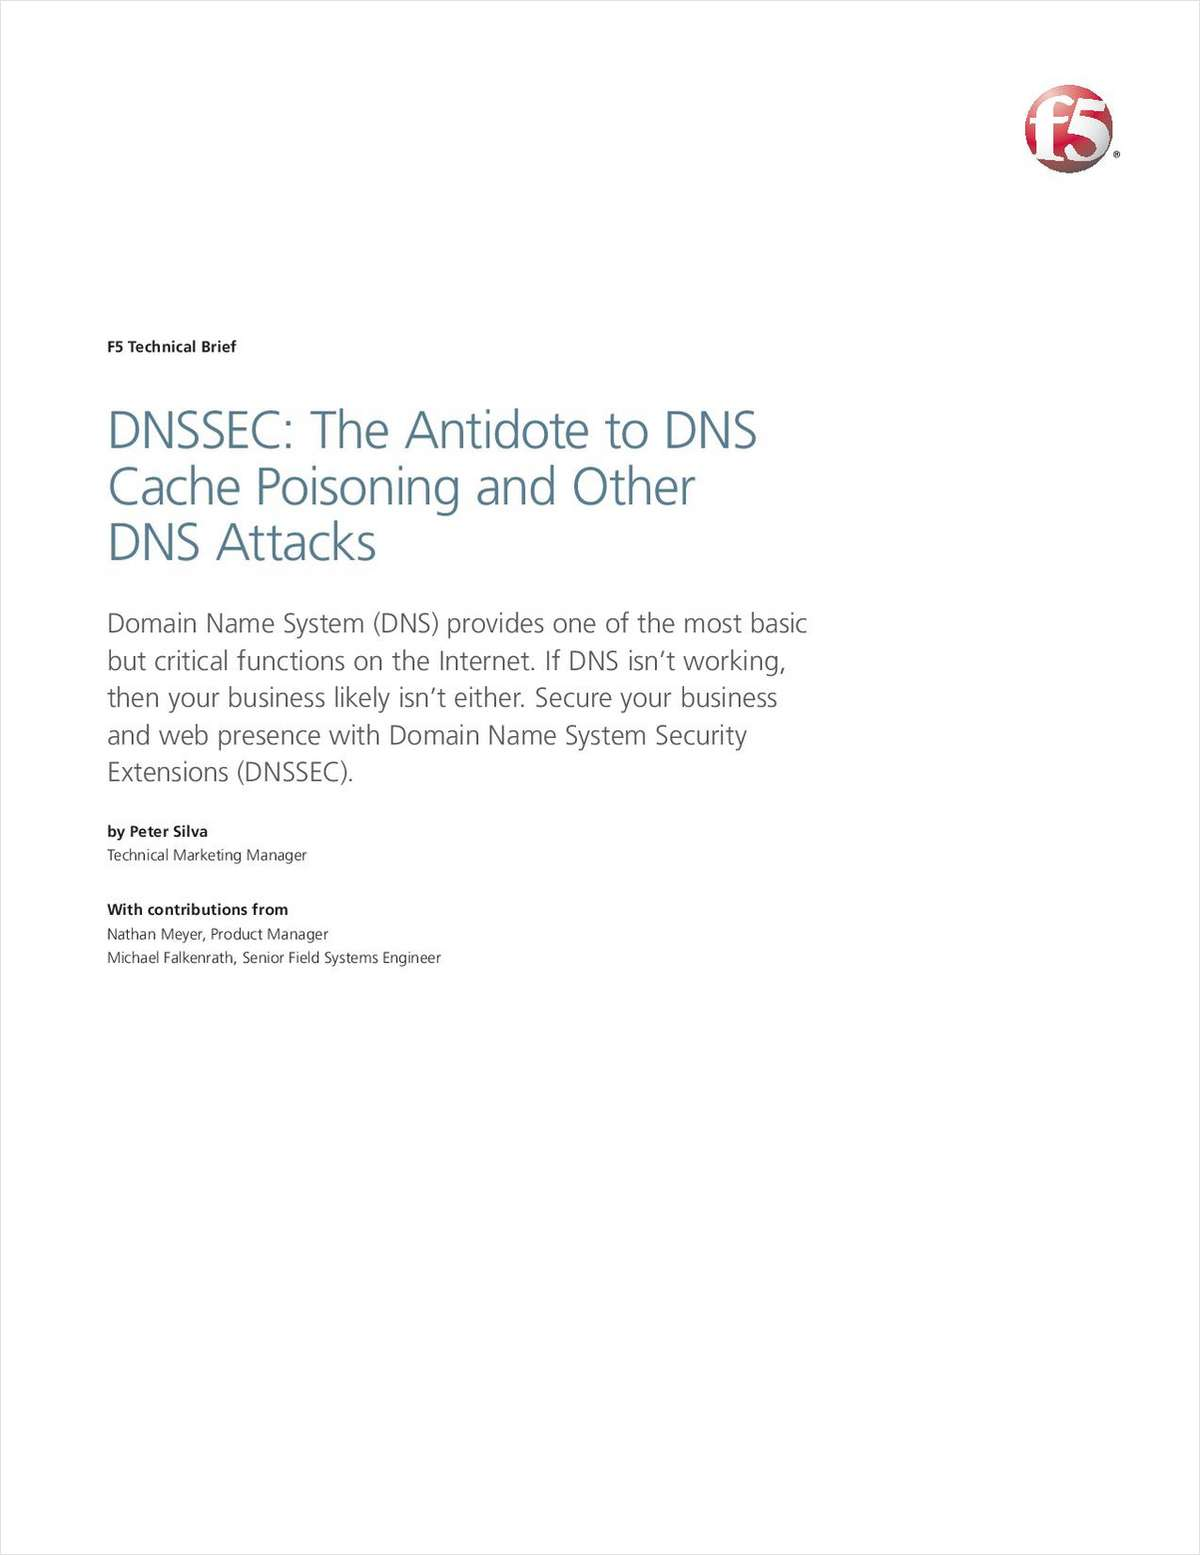 DNSSEC: The Antidote to DNS Cache Poisoning and Other DNS